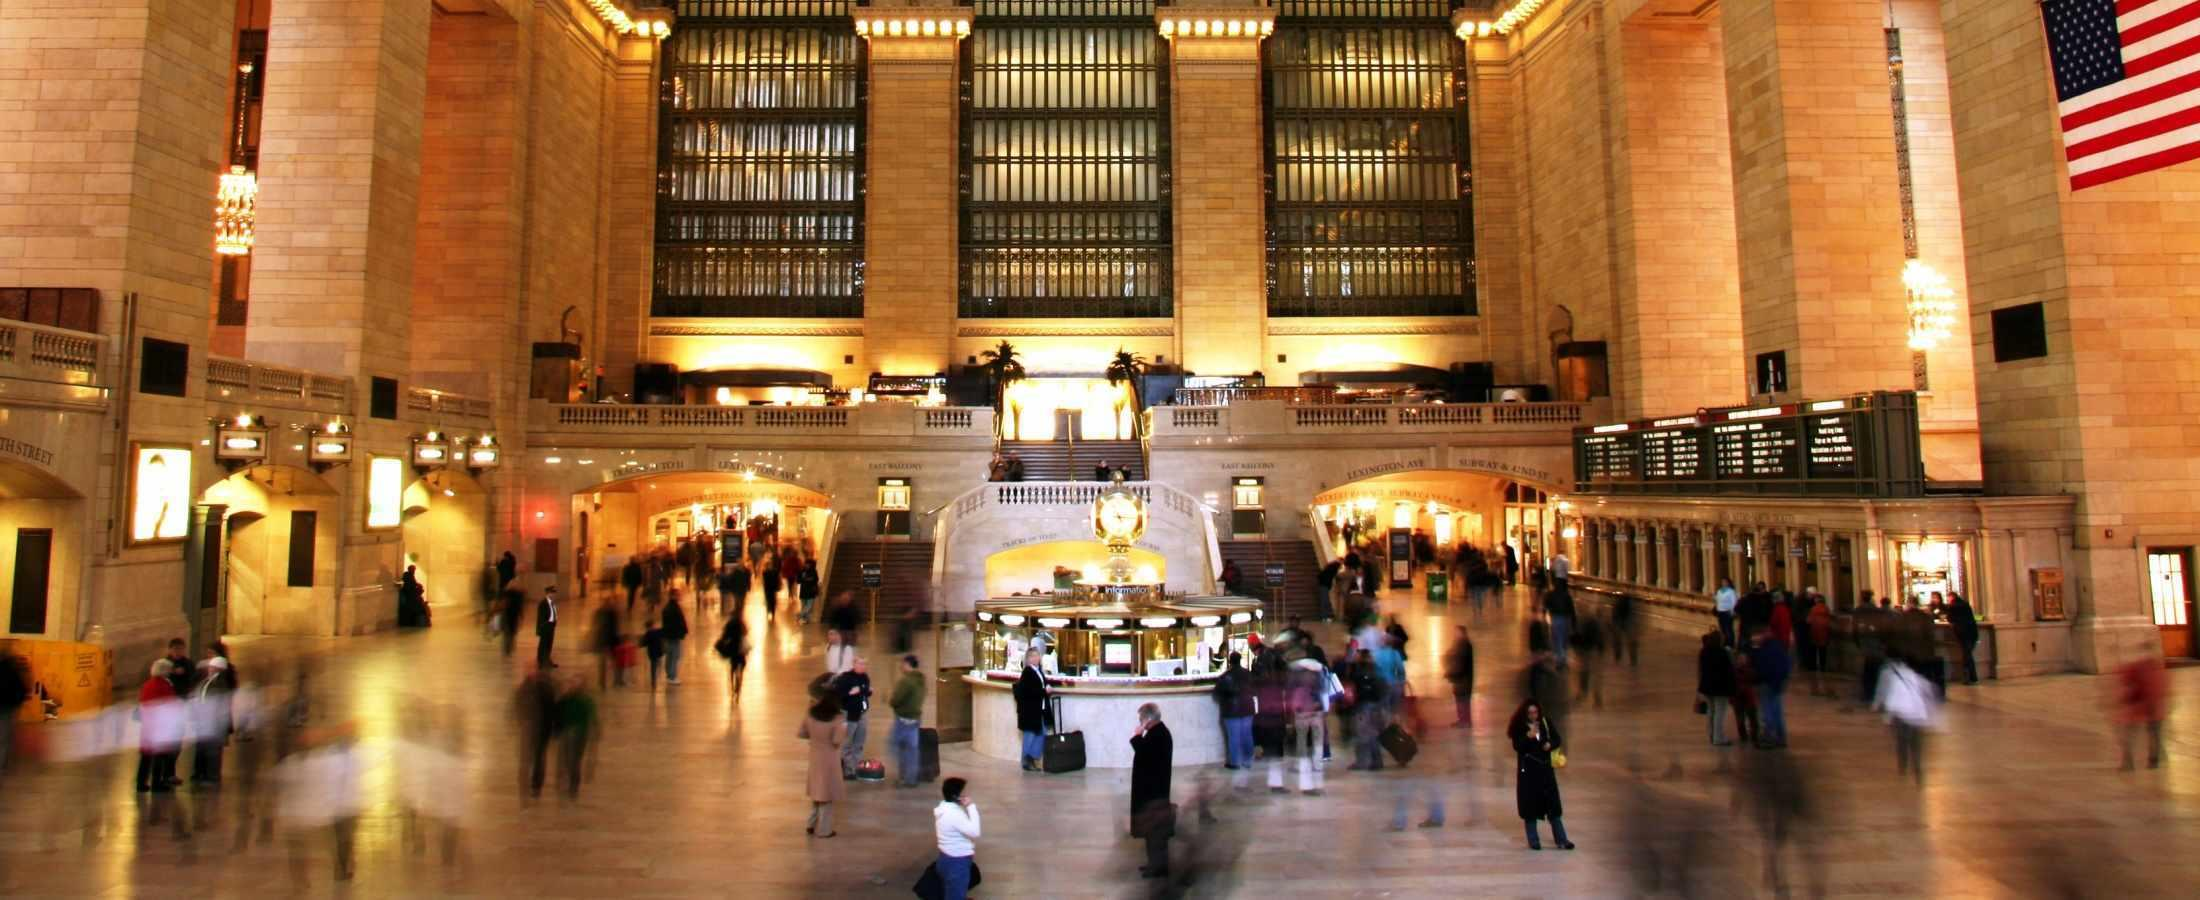 Center of Grand Central Station